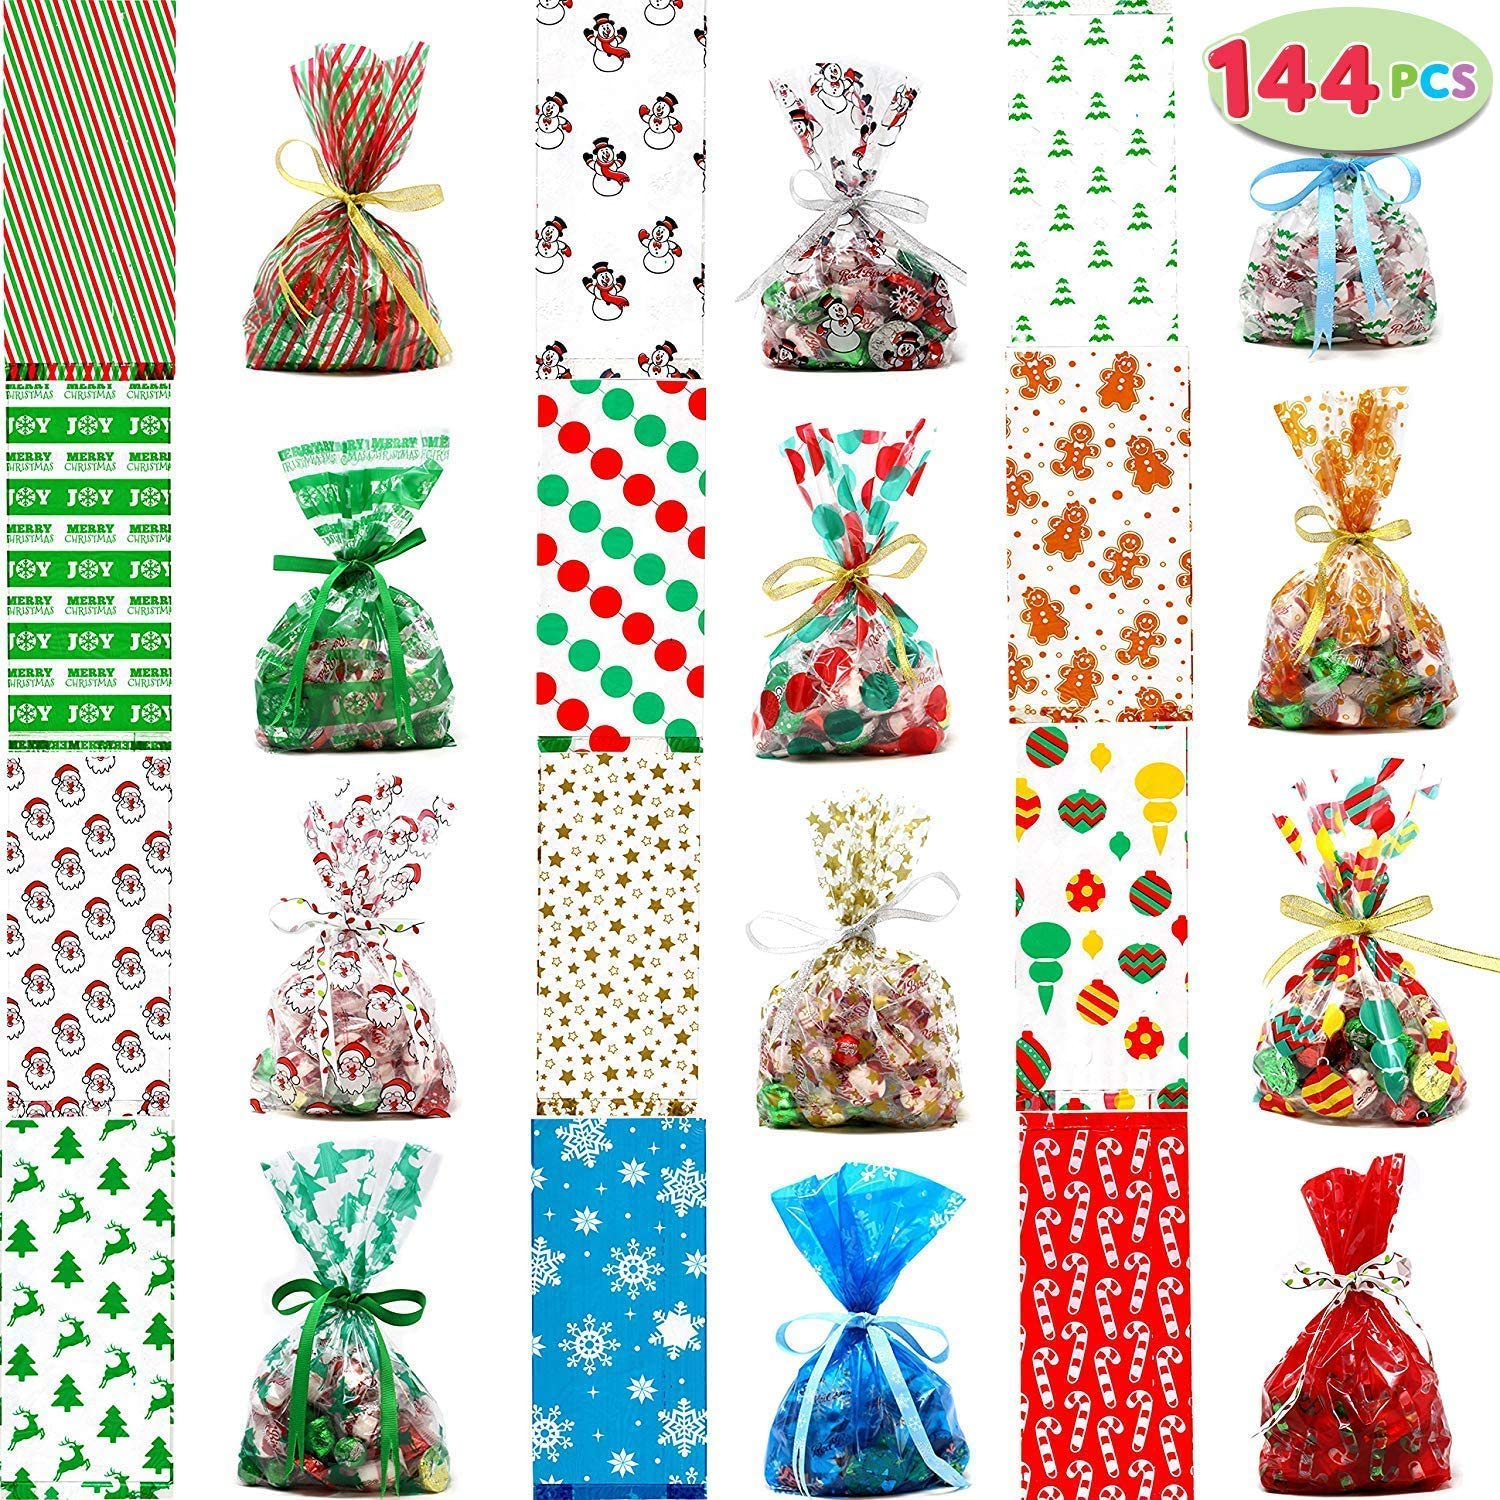 144 PCs Christmas Cellophane Goody Bags Assortment for Holiday Treats, Christmas Party Favors, Cello Candy Bags, Christmas Gifts, Party Supplies, Christmas Goodie Bags